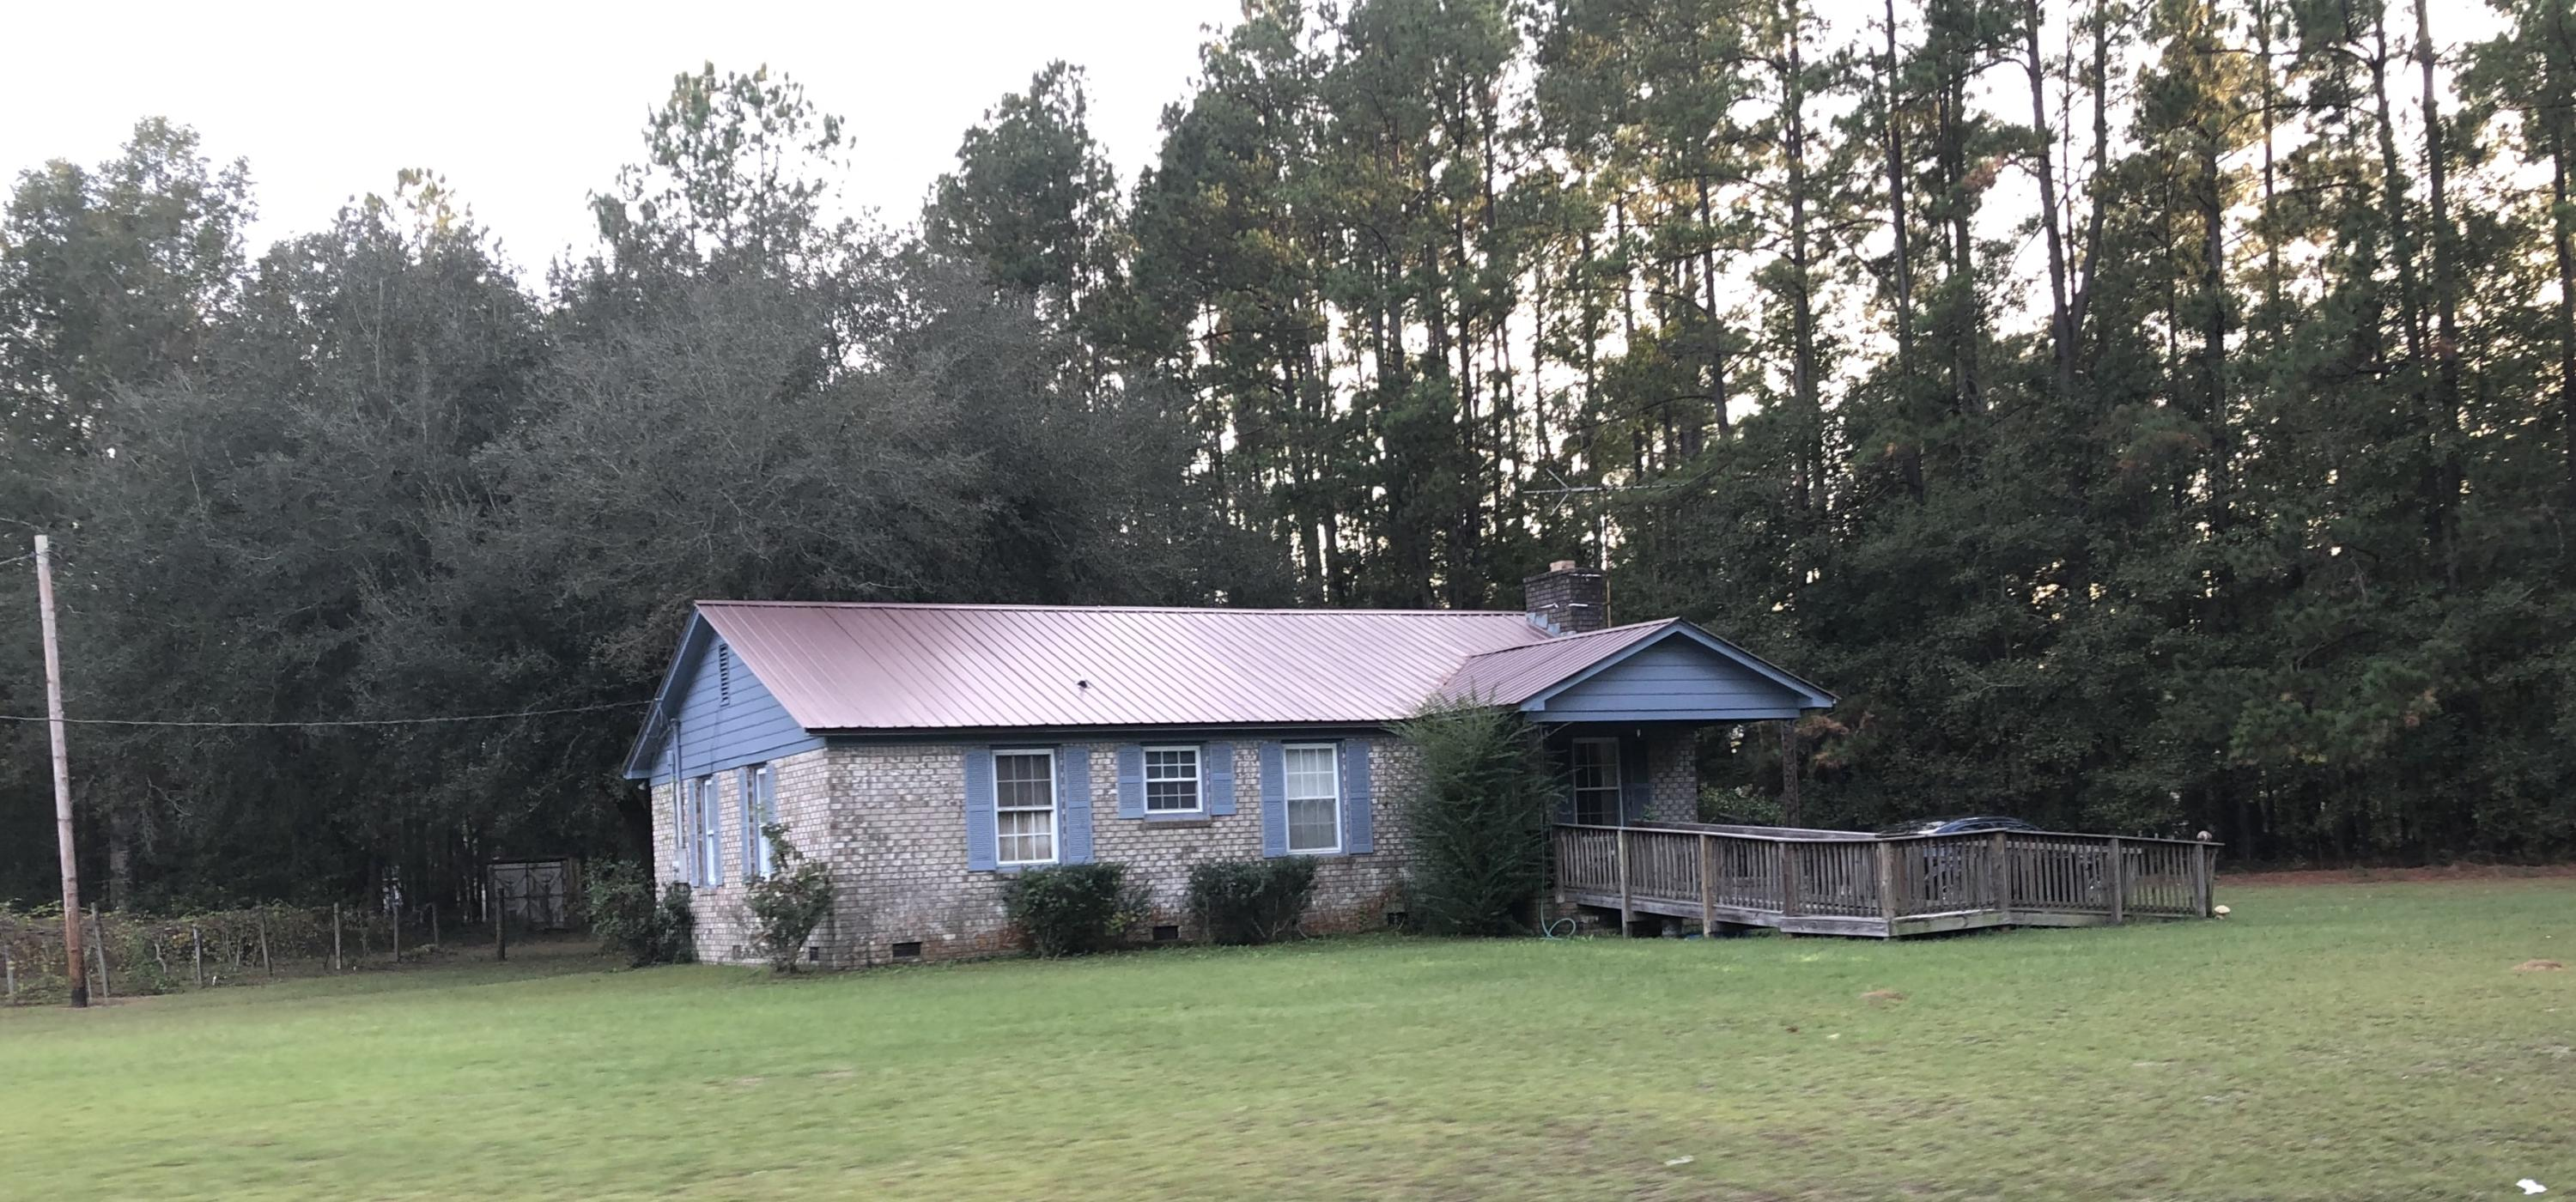 460 Smoak Road Walterboro, SC 29488